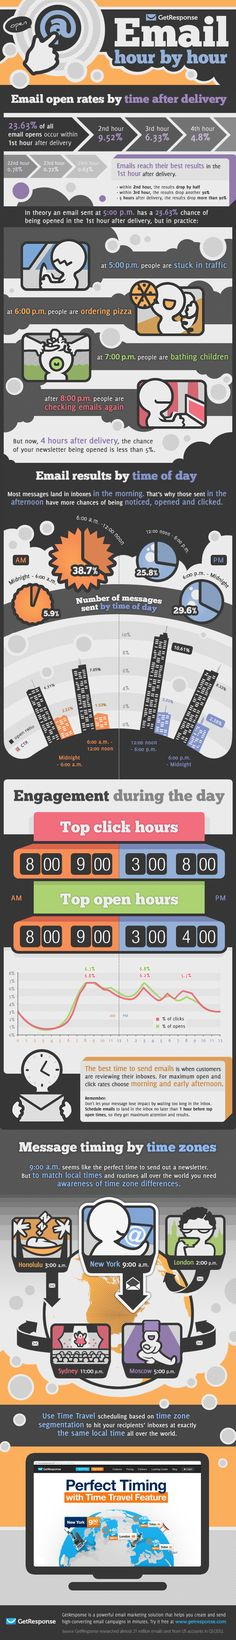 inforgraphic_Email_Opens_by_time_of_day